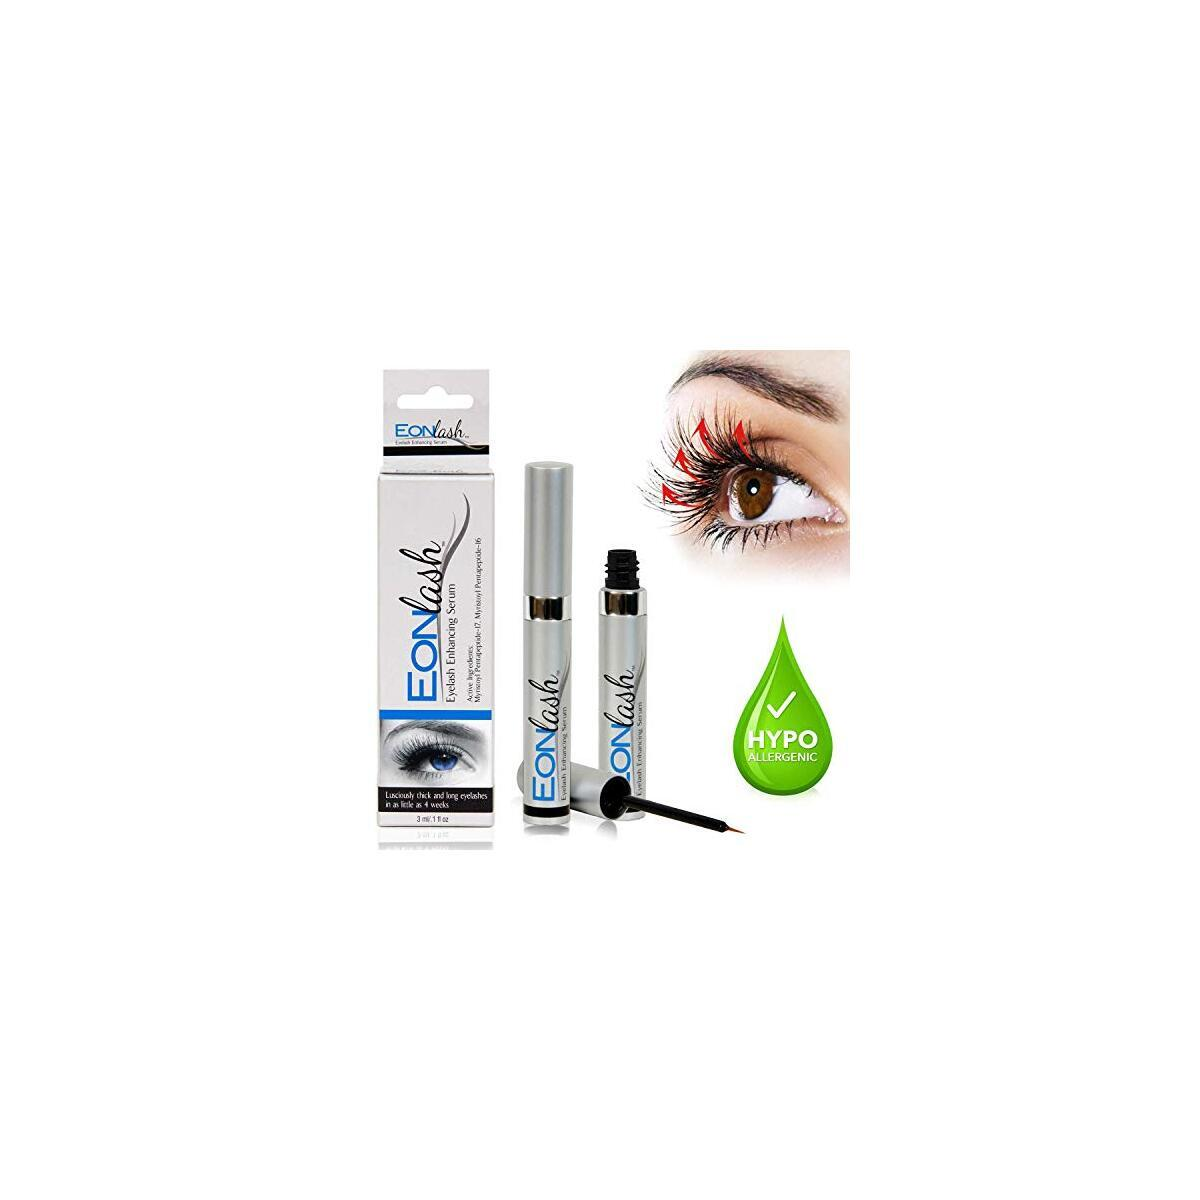 Amazing Surprises Gift Pack Set | Eyebrow & Eyelash Growth Serum | Dual Tip Liquid Eyeliner Pen Micro Blading Eyebrow Pen Long Lasting | Super Slim Paraben Free Formula for Longer, Thicker Eyebrows